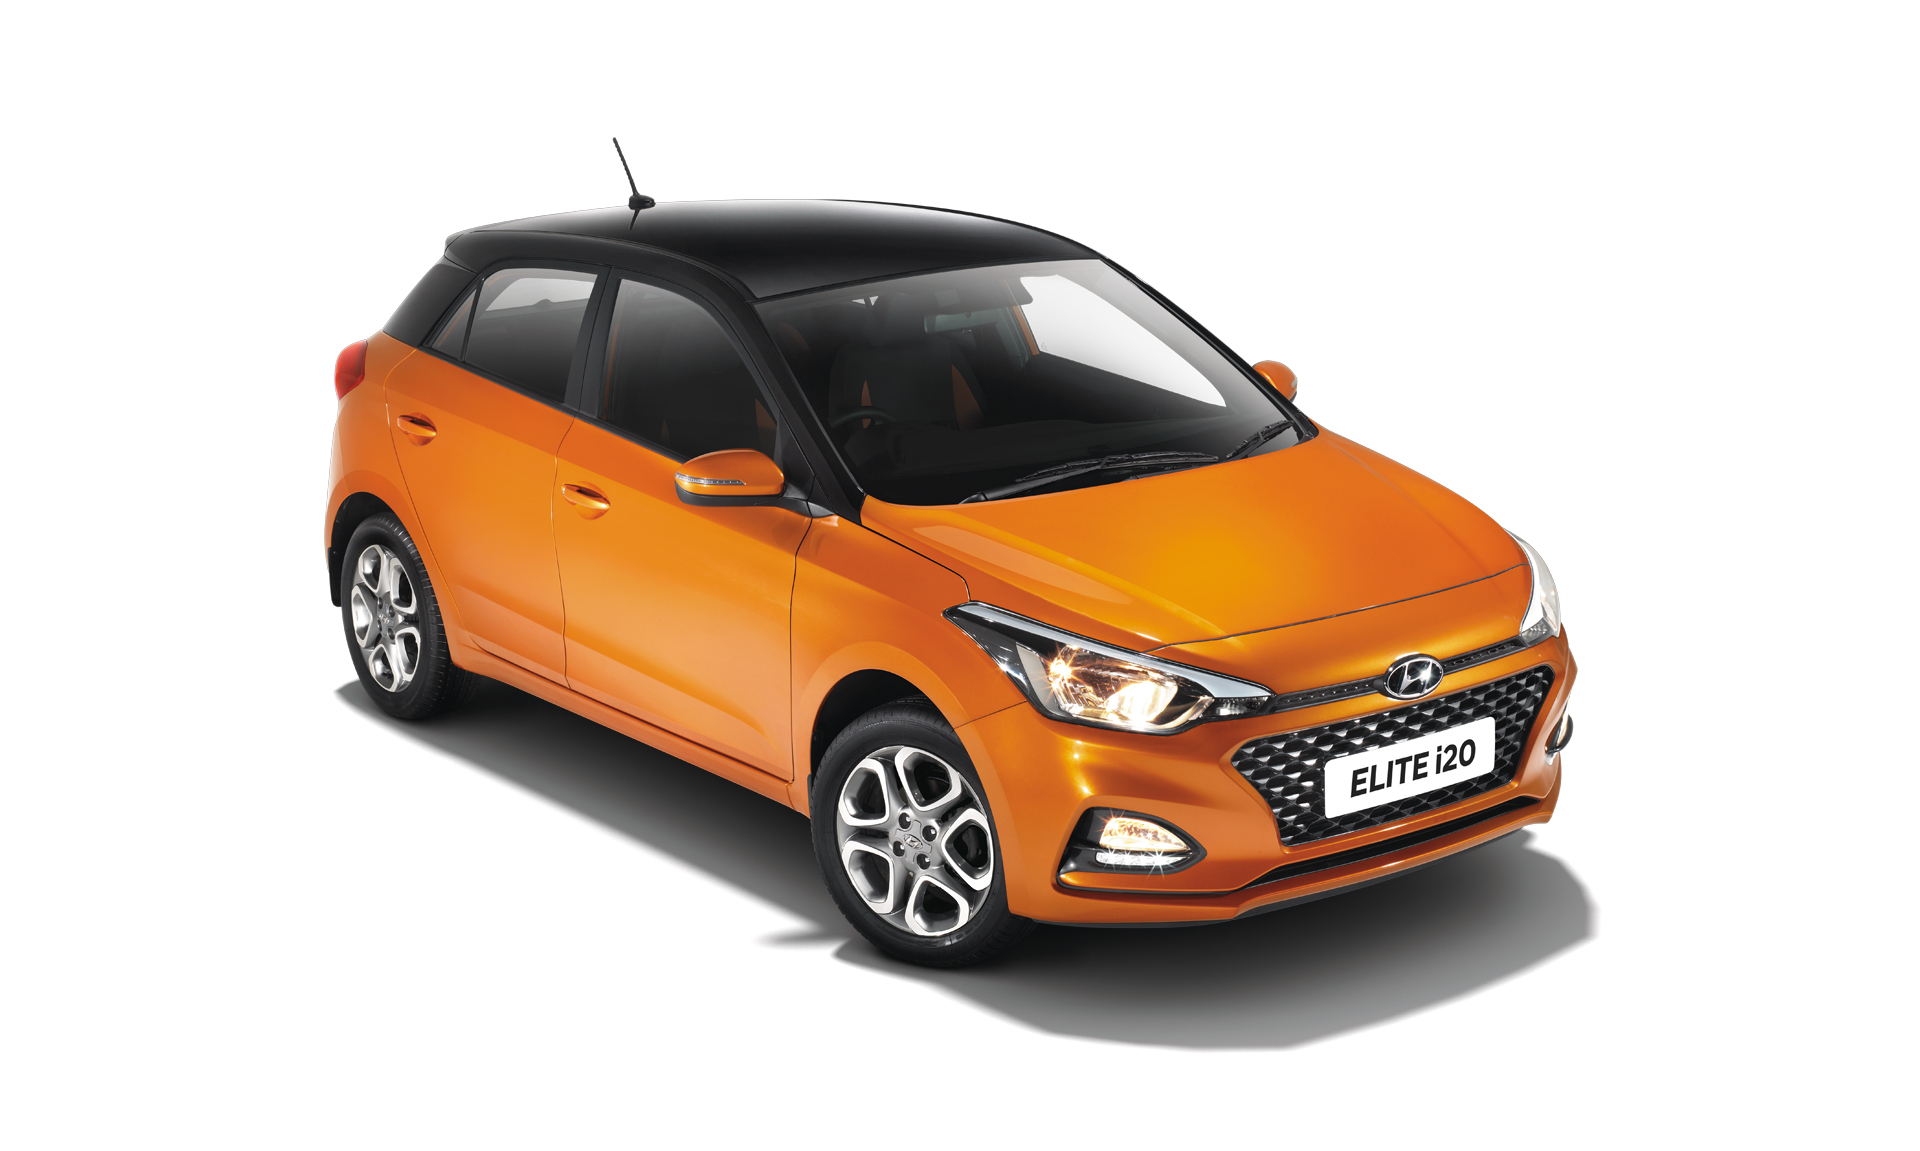 Hyundai launched The New Elite i20 At The 2018 Auto Expo